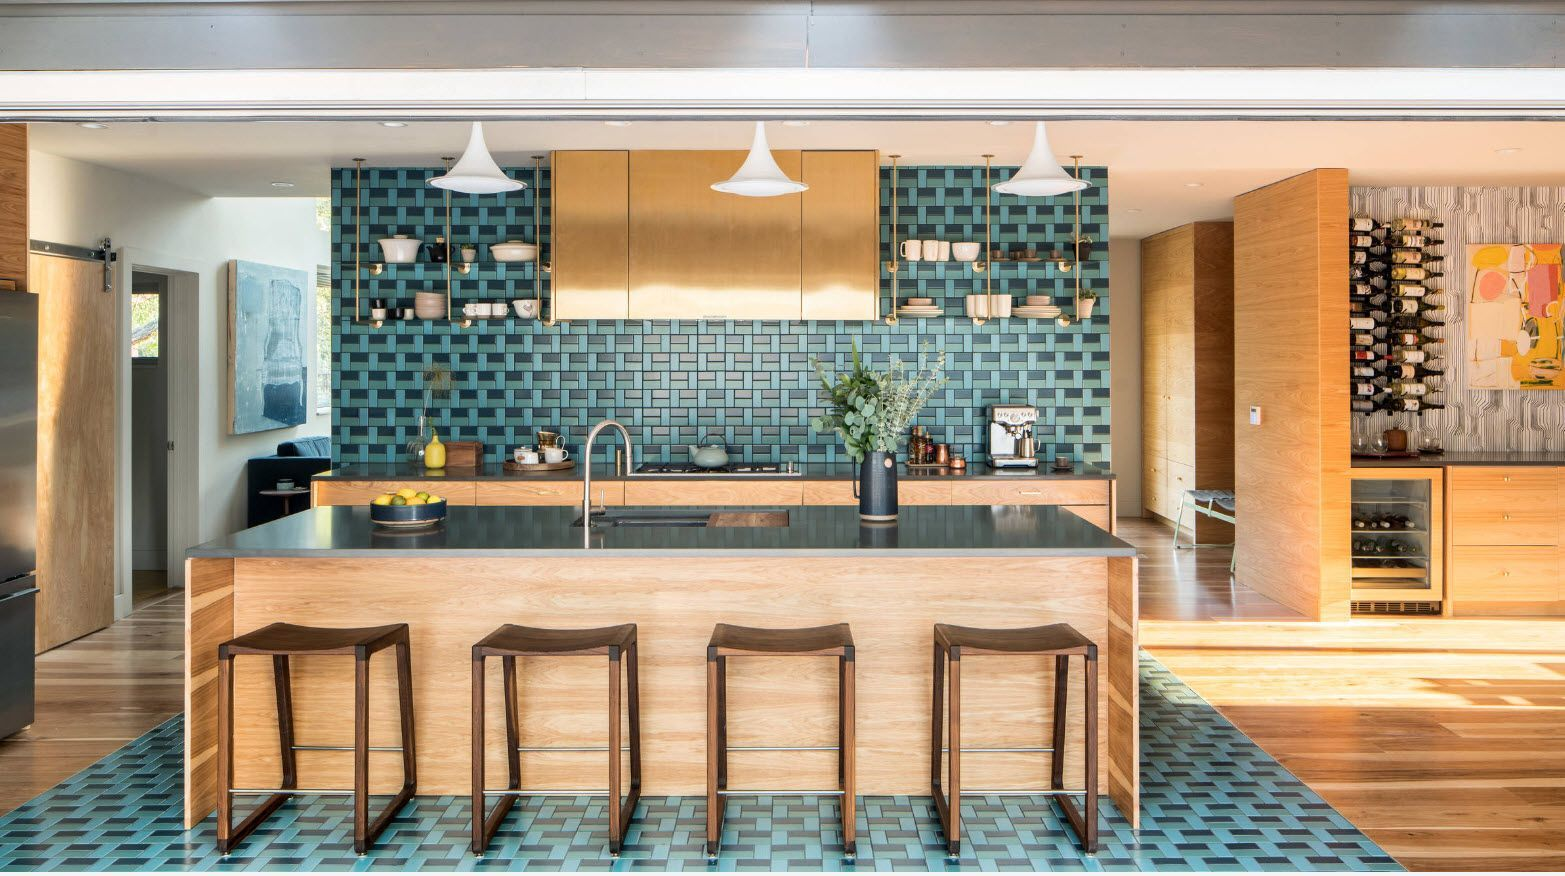 Spectacular integrity of the kitchen design by using the turquoise tiling